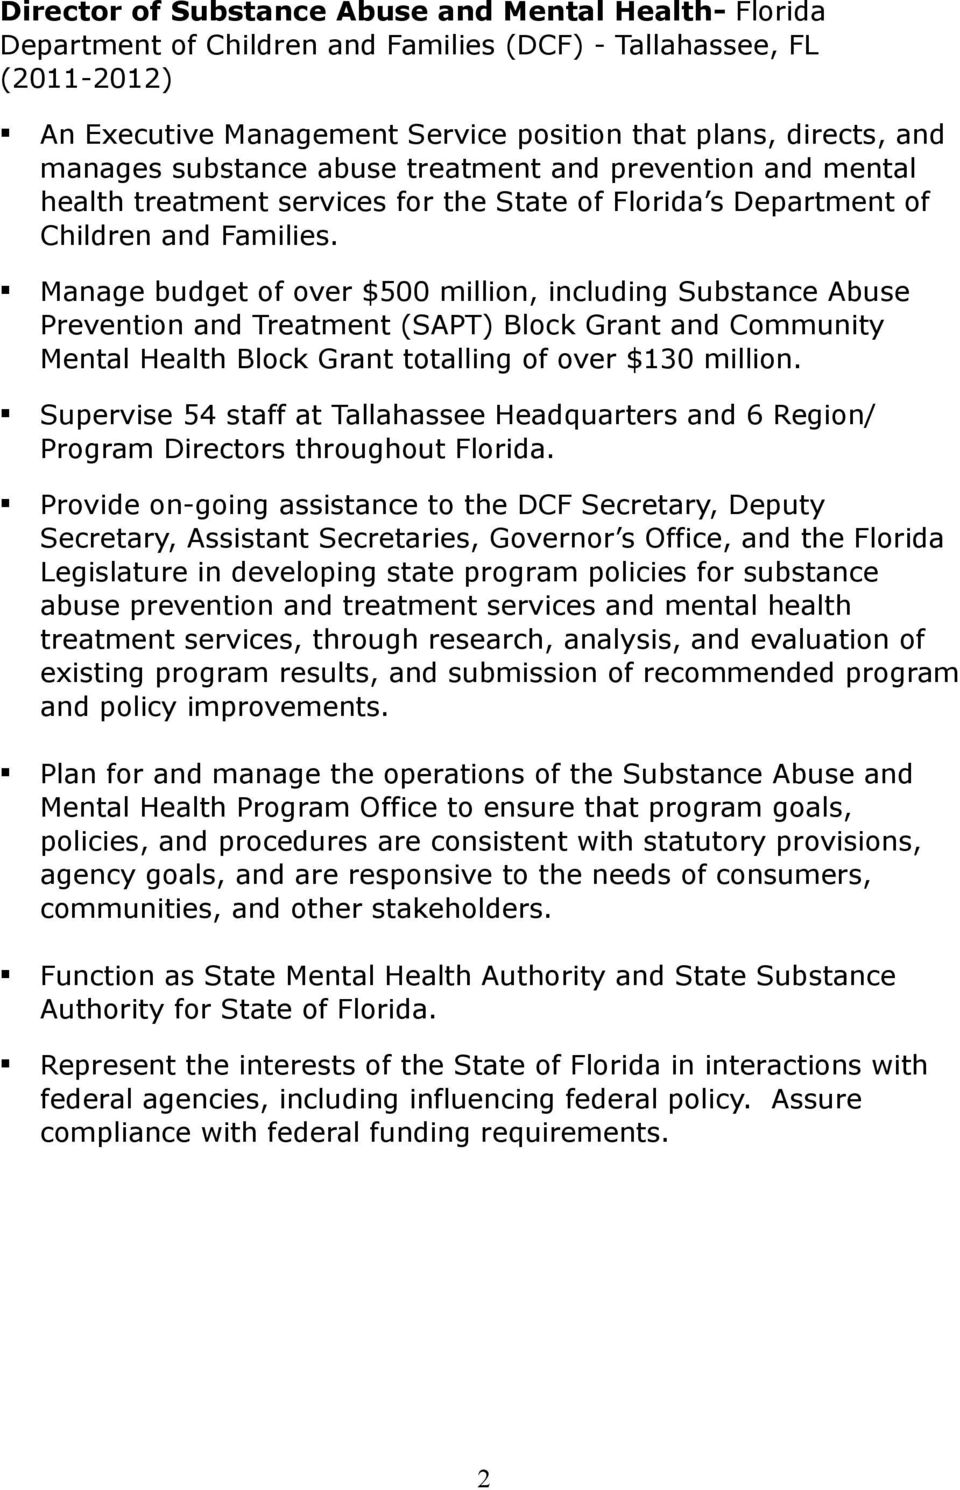 Manage budget of over $500 million, including Substance Abuse Prevention and Treatment (SAPT) Block Grant and Community Mental Health Block Grant totalling of over $130 million.